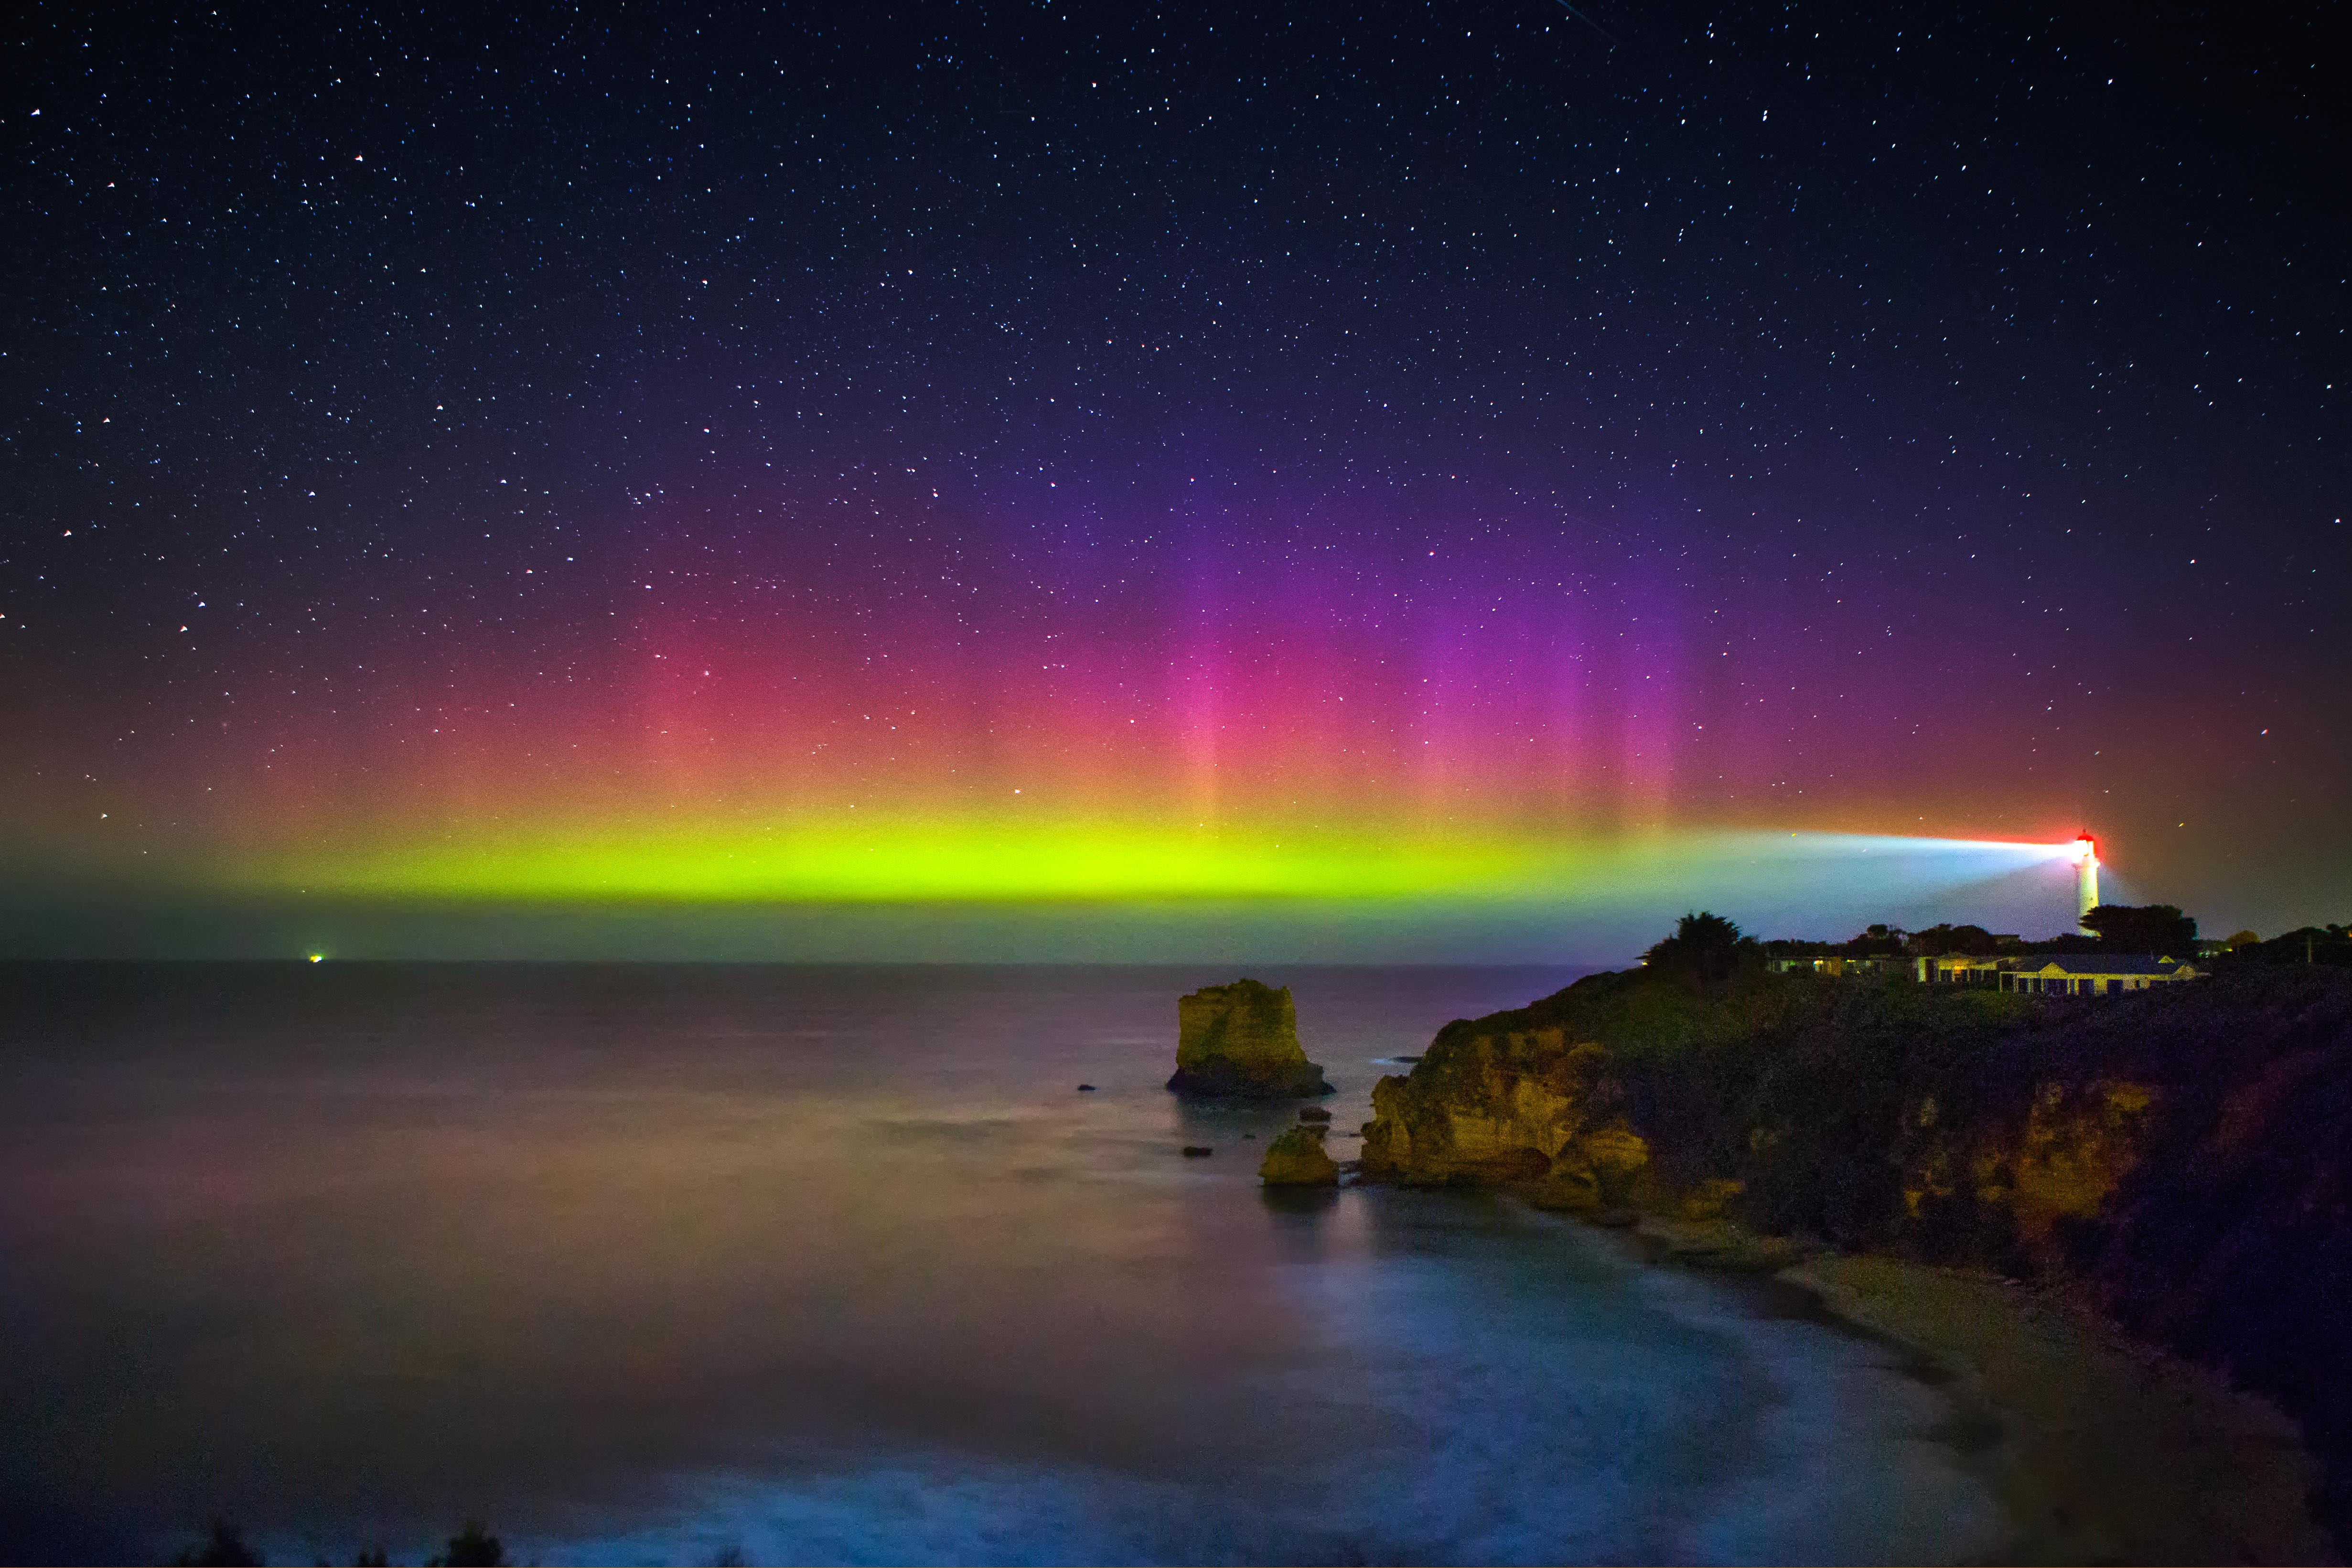 Image: The aurora australis at Aireys Inlet, Victoria on 28 March 2017. Credit: Lachlan Manley Photography